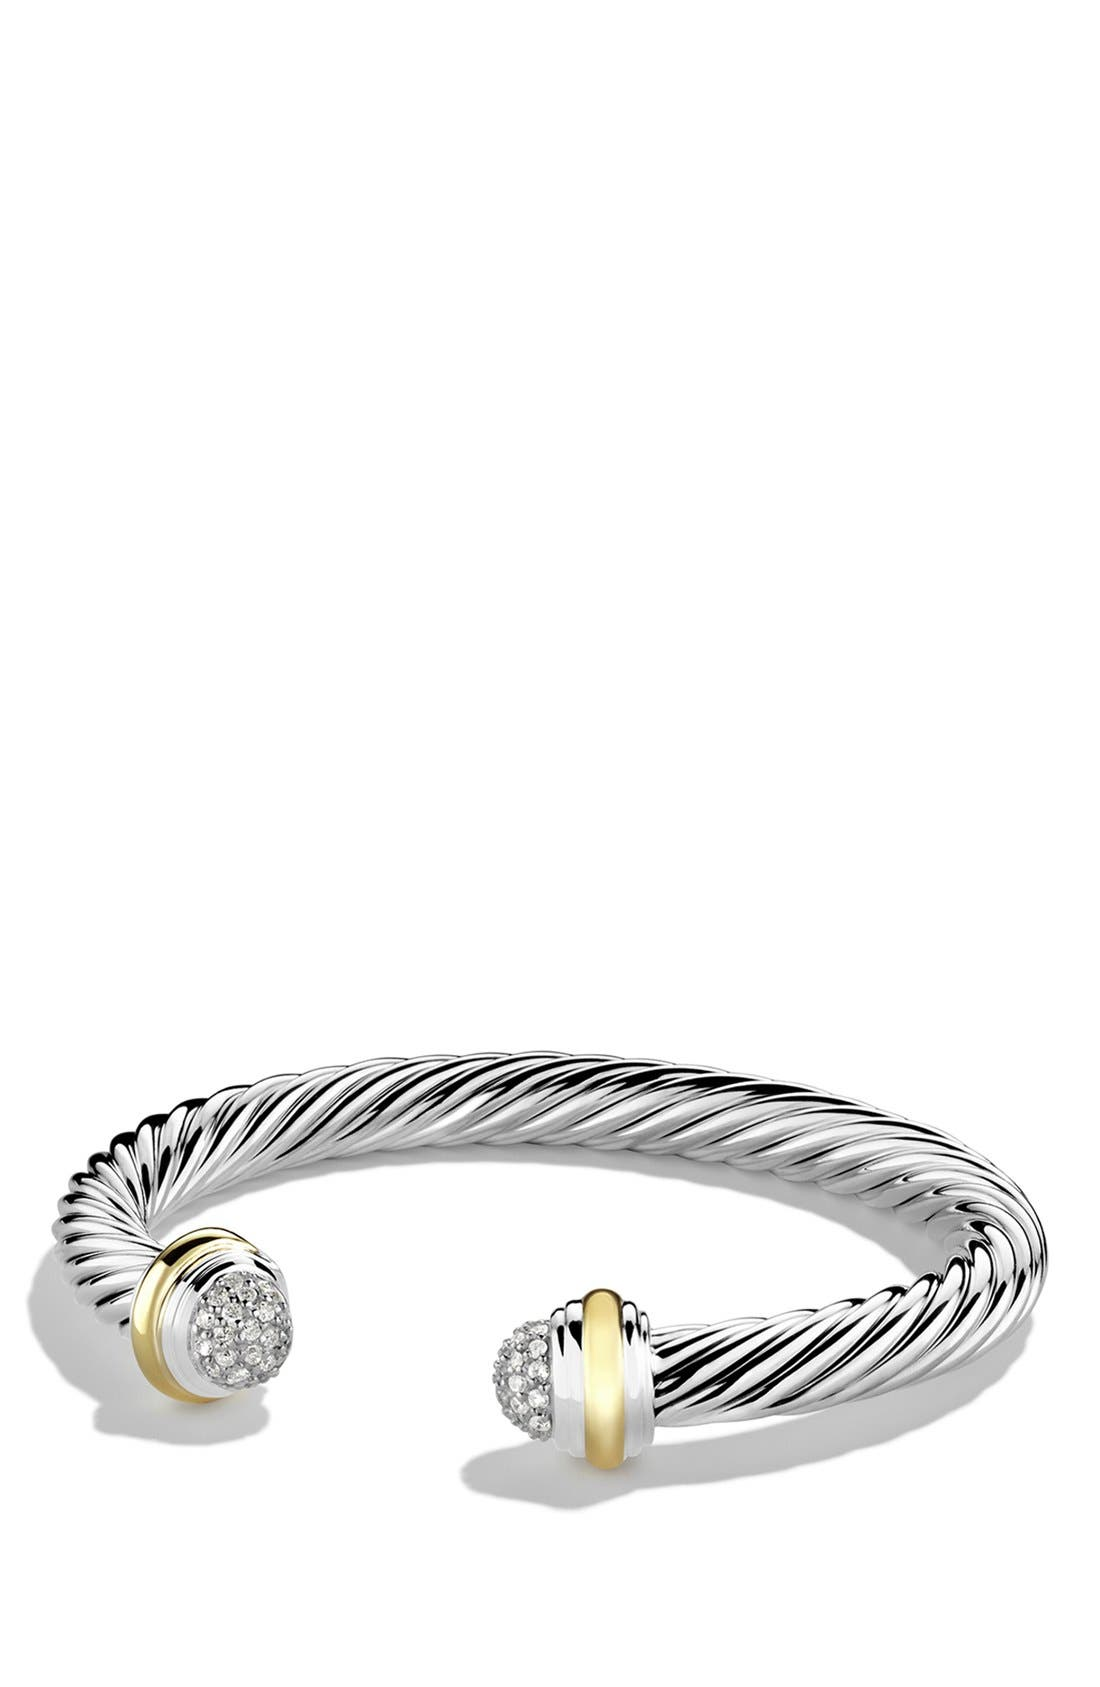 David Yurman 'Cable Classics' Bracelet with Diamonds and Gold